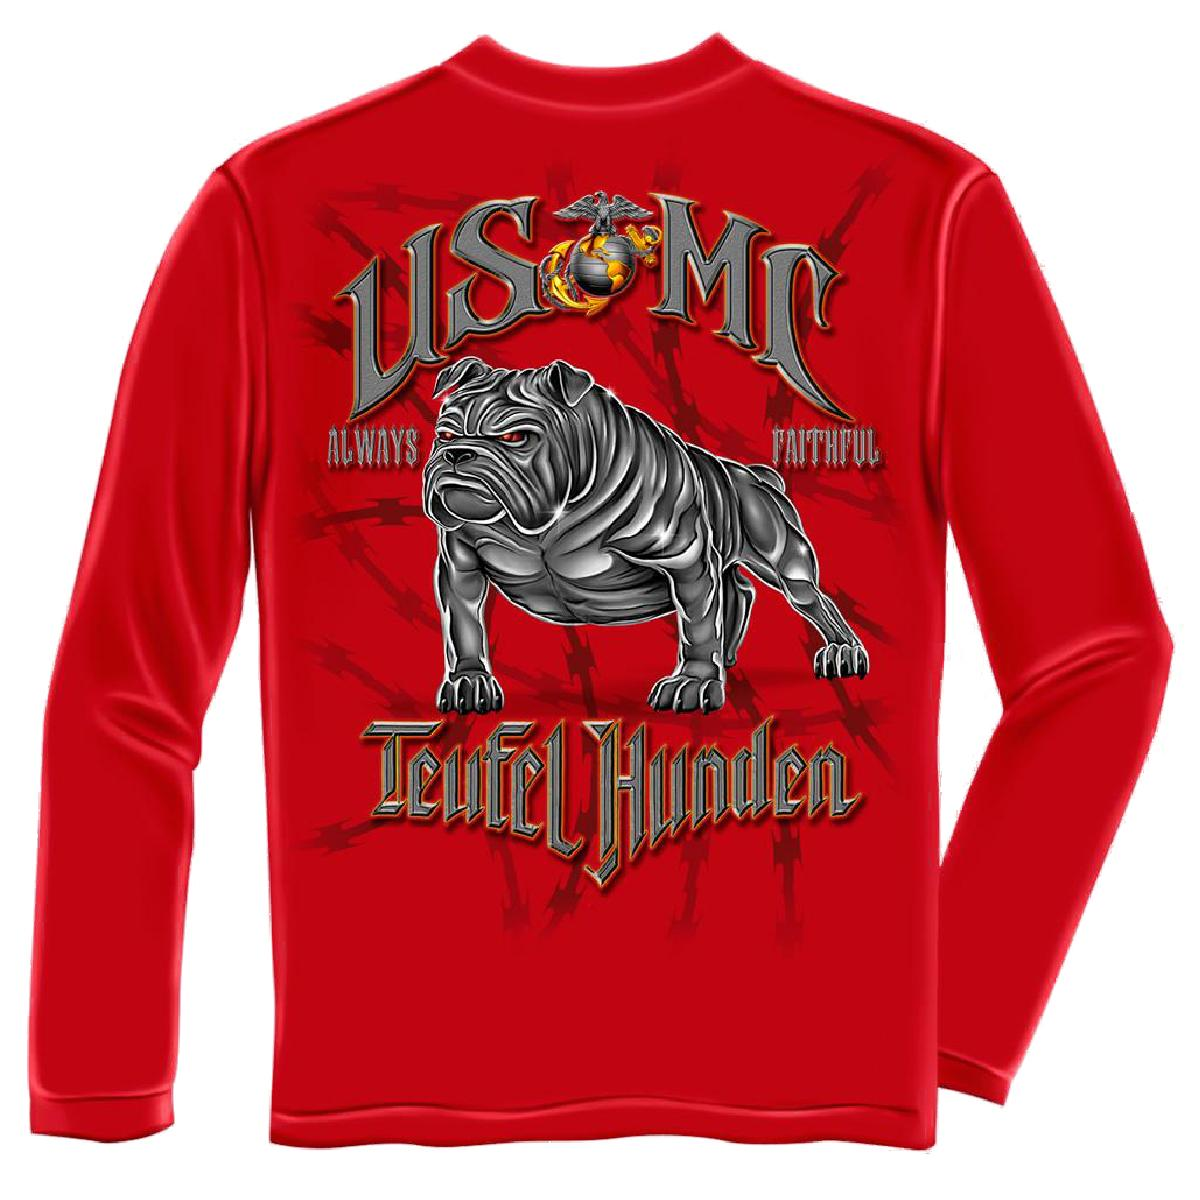 USMC Teufel Hunden Devil Dog Marines Long Sleeve T-Shirt by , Red ...